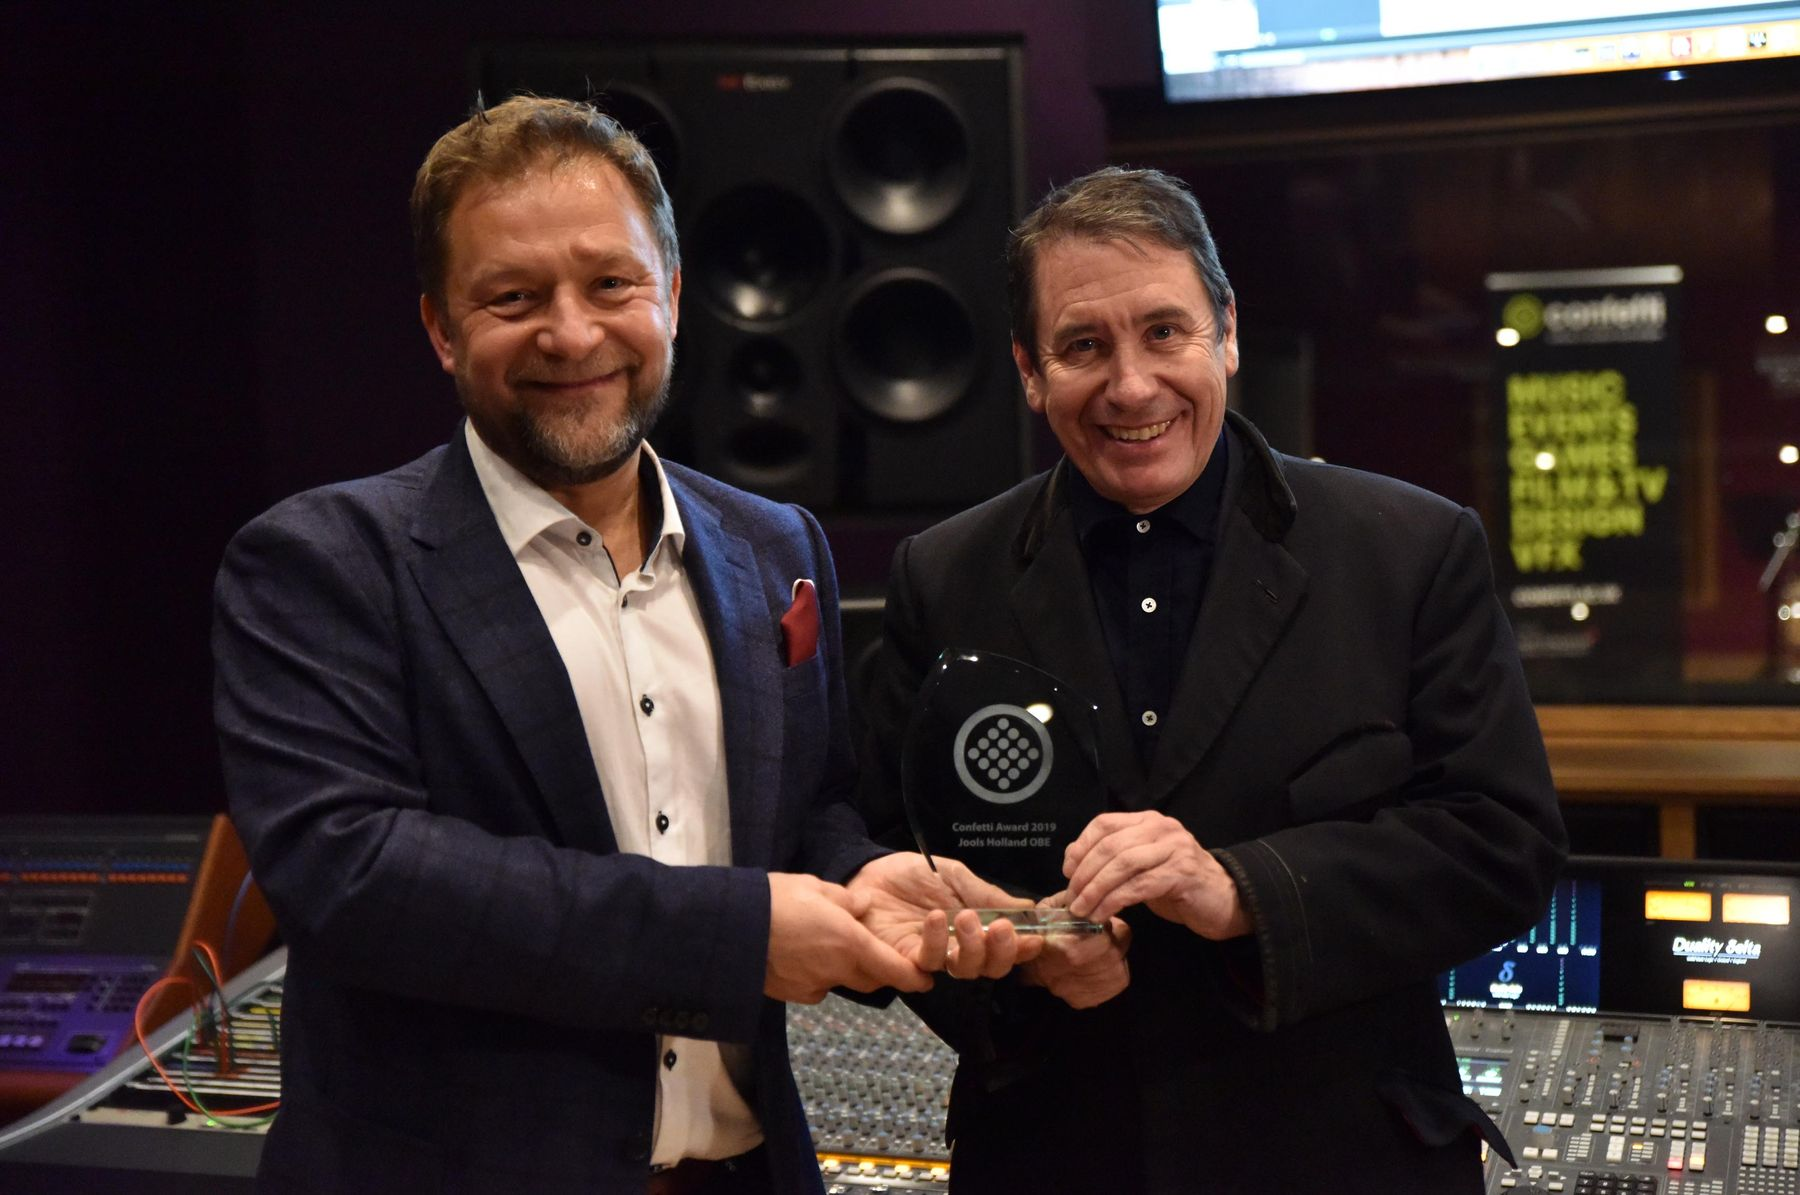 Craig Chettle and Jools Holland with award